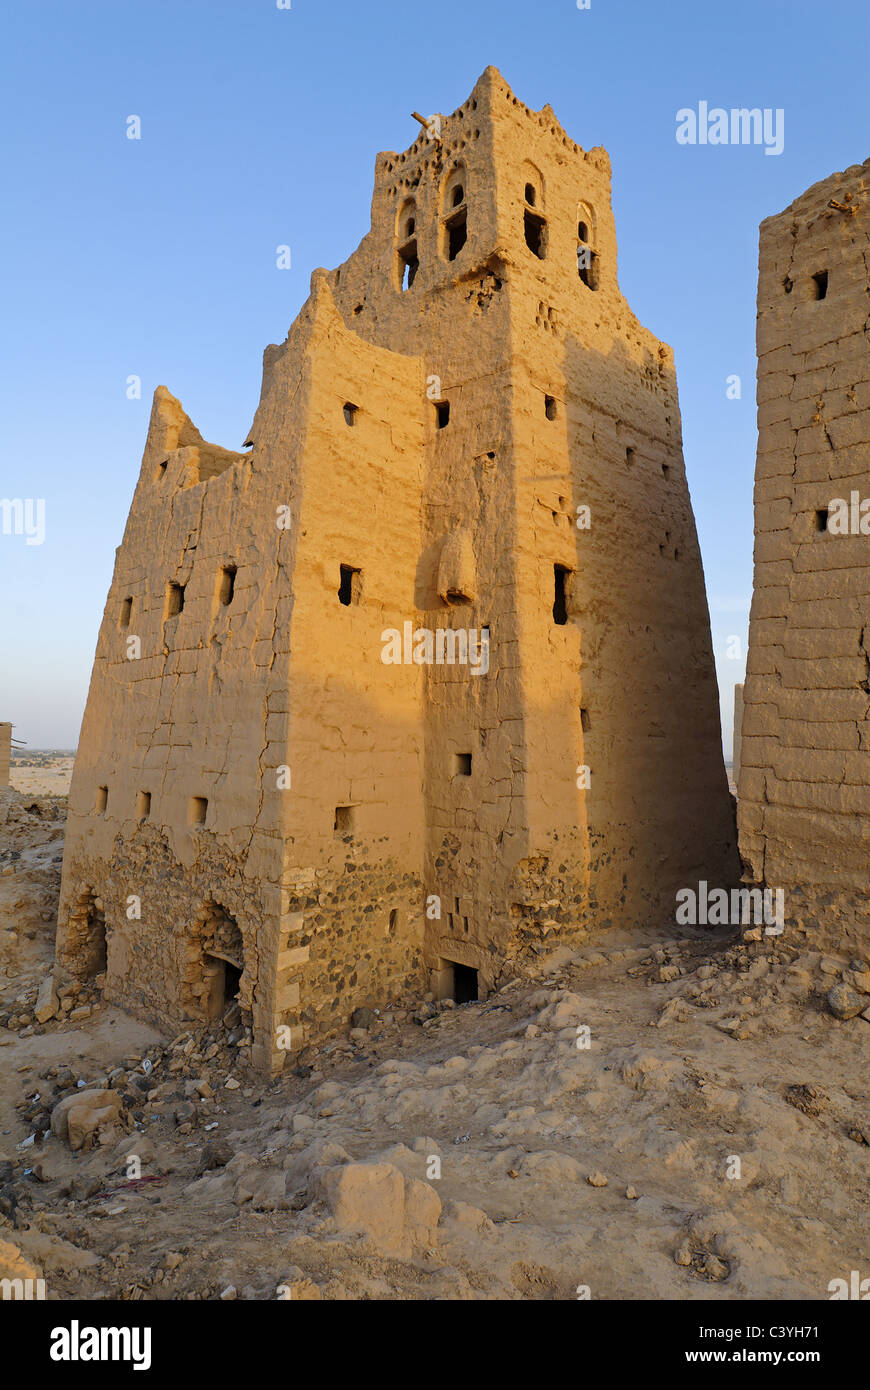 Old town, City, Marib, Yemen, Arabia, Middle East, Abandoned, Tower houses, Houses, Architecture, Ruins, Ruin Stock Photo